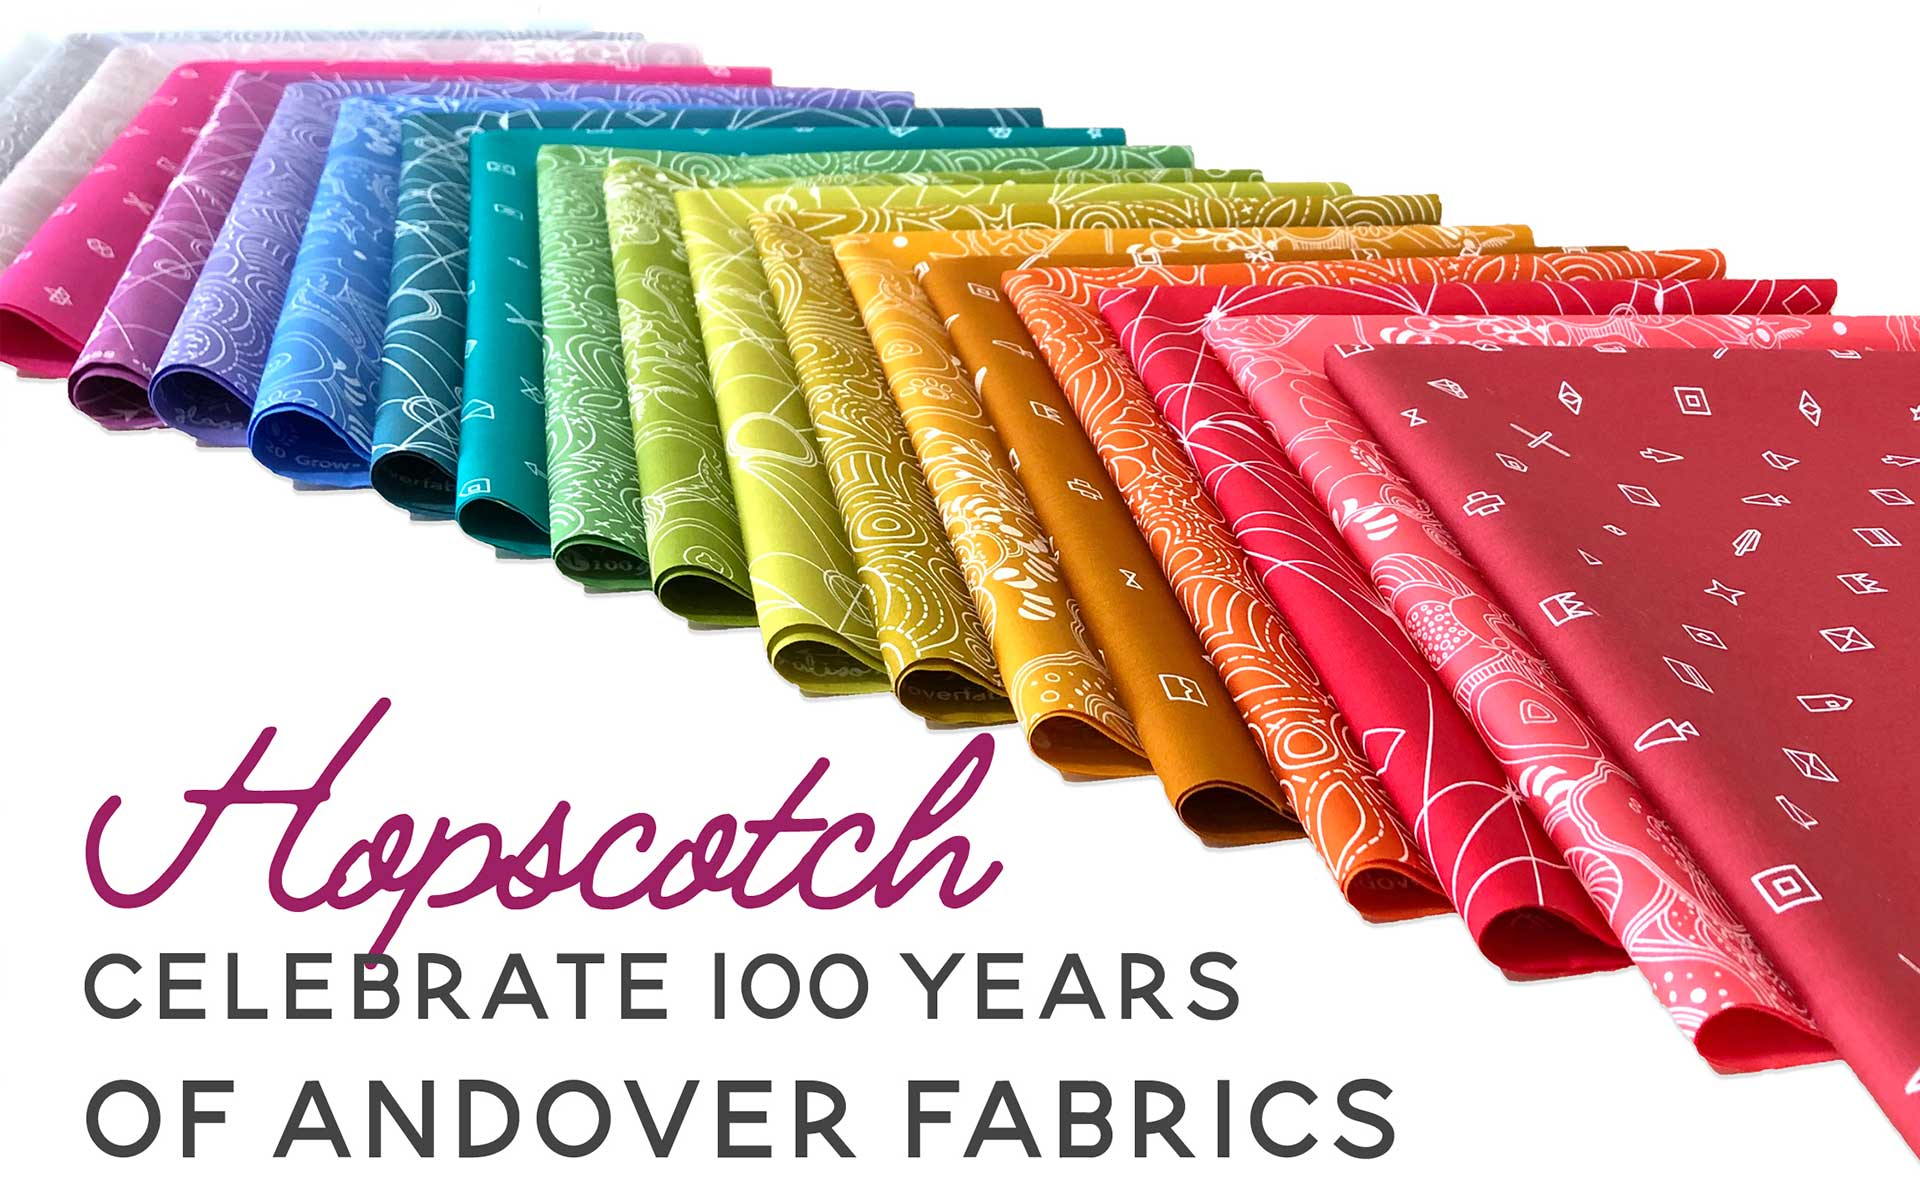 celebrate 100 years of andover fabrics with alison glass' hopscotch